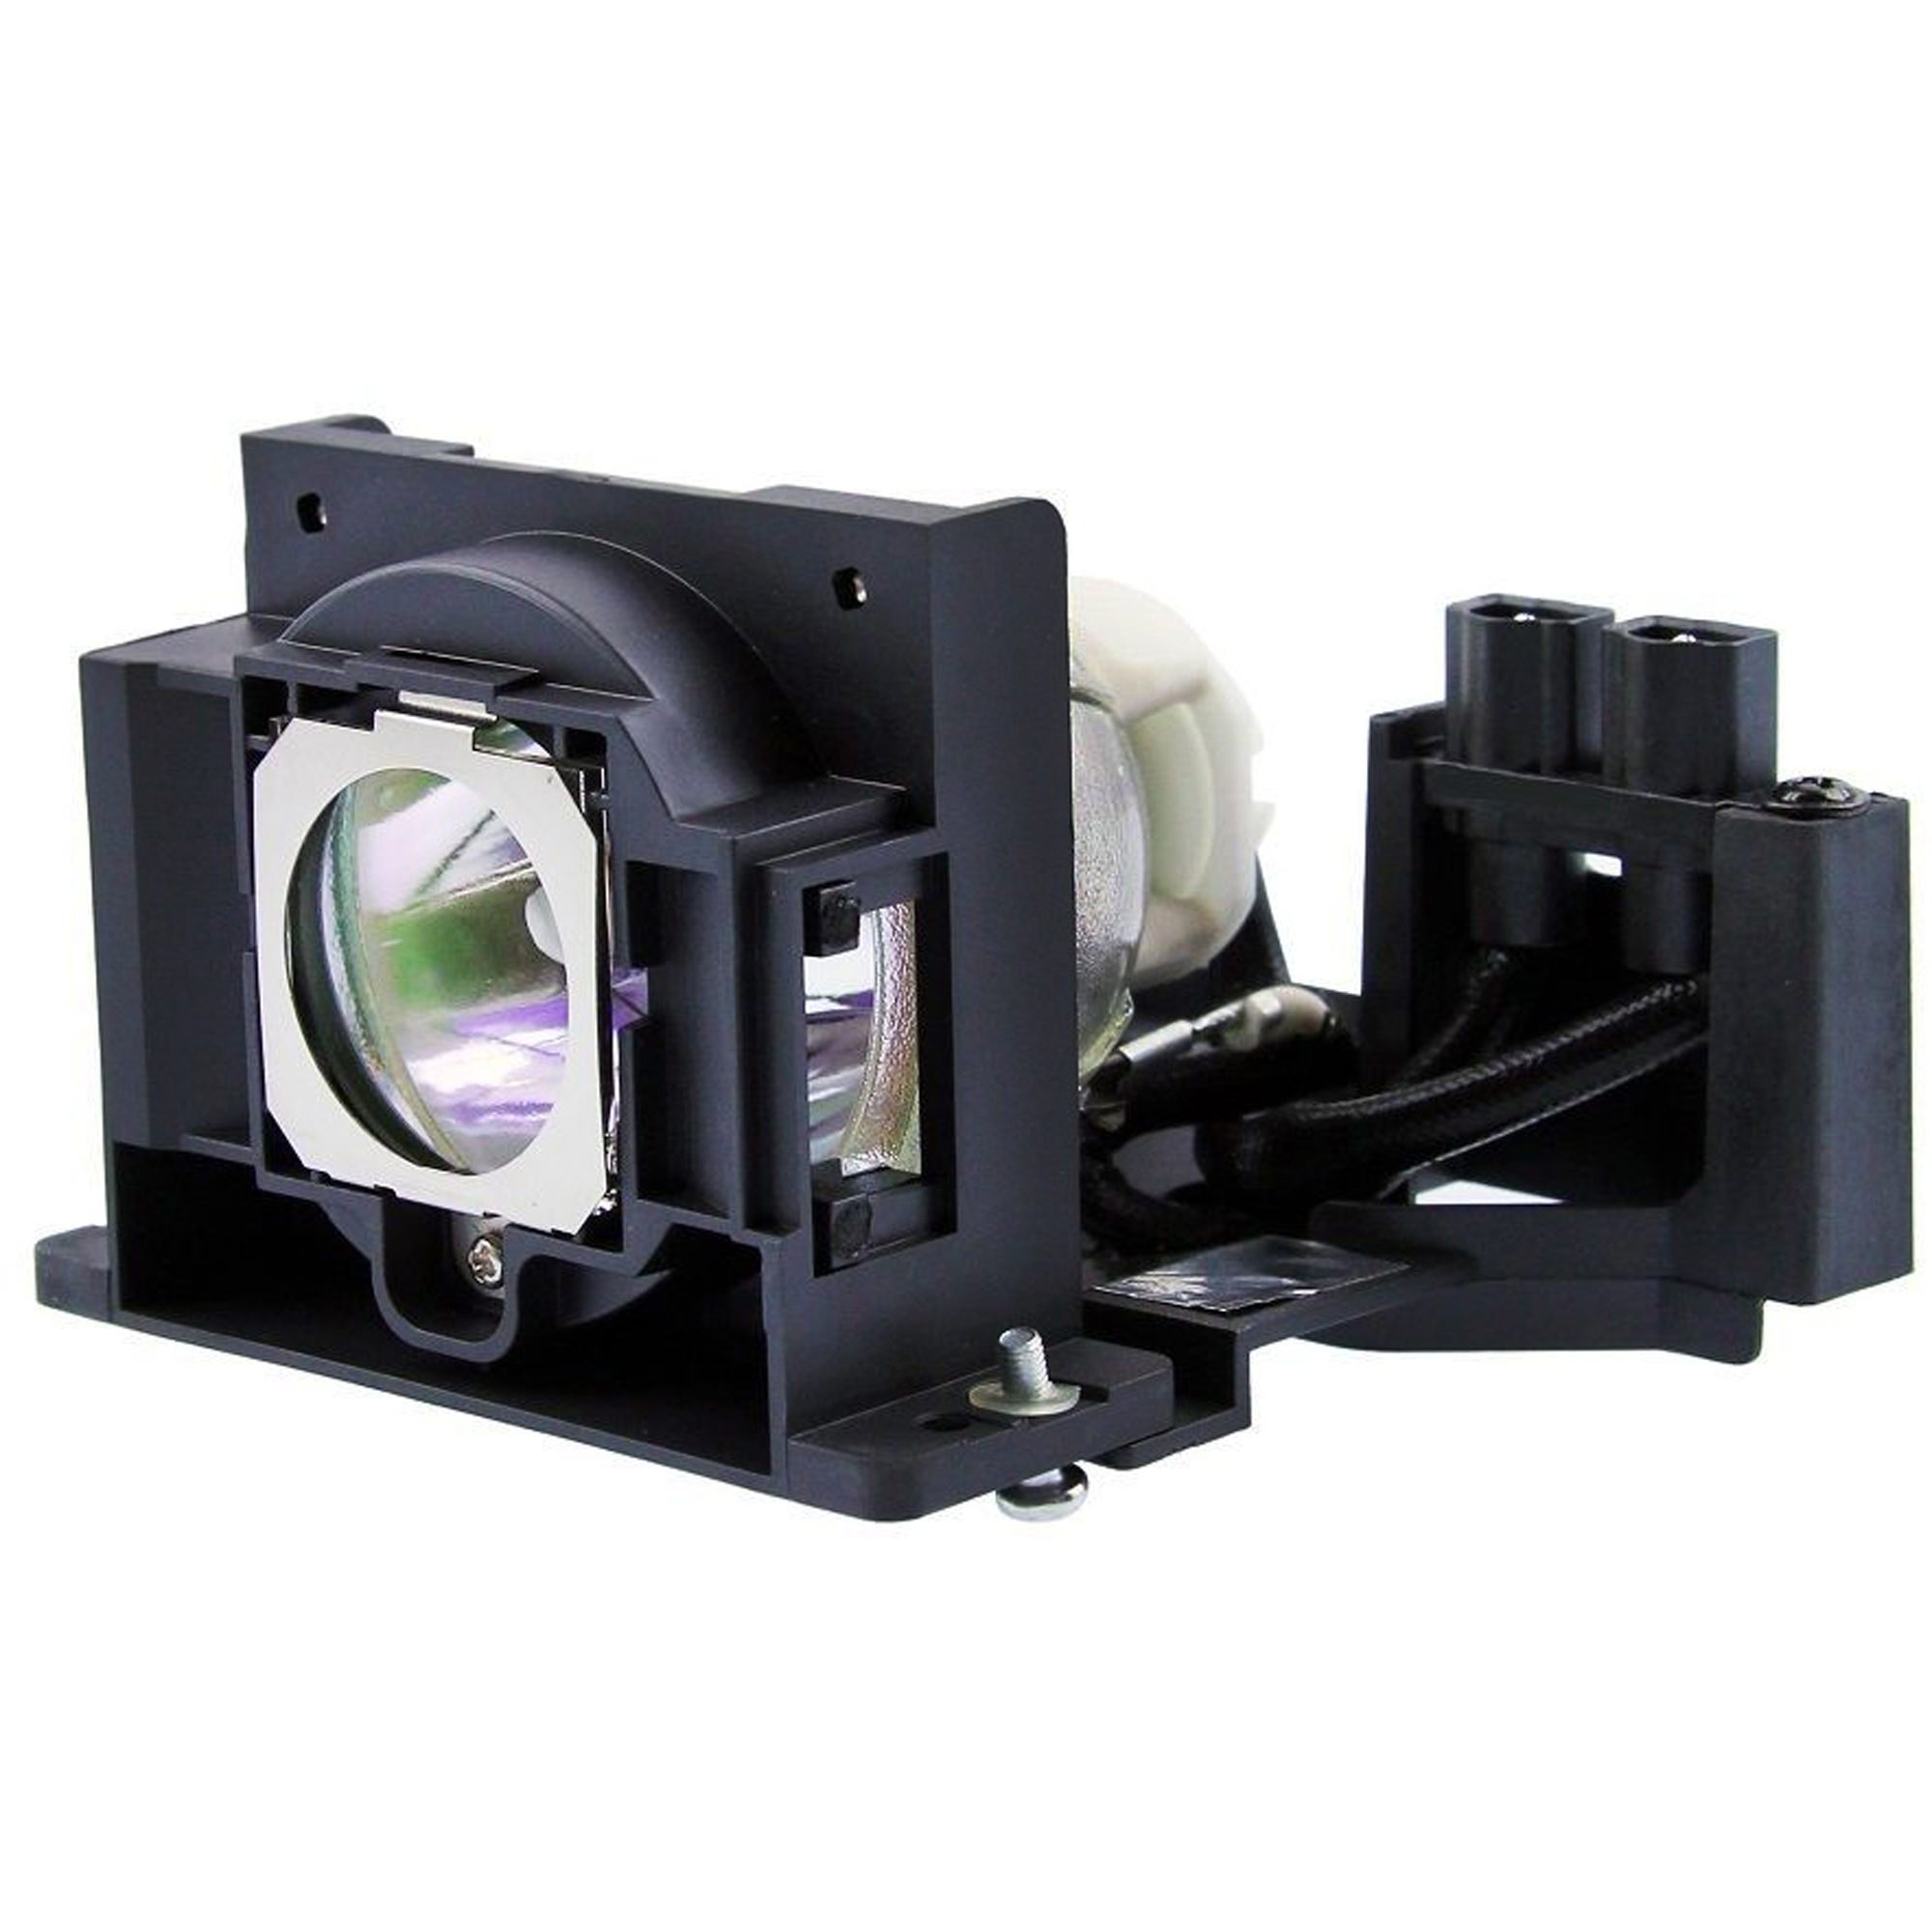 Projector Lamp for ASK Proxima C185 200-Watt 2000-Hrs SHP